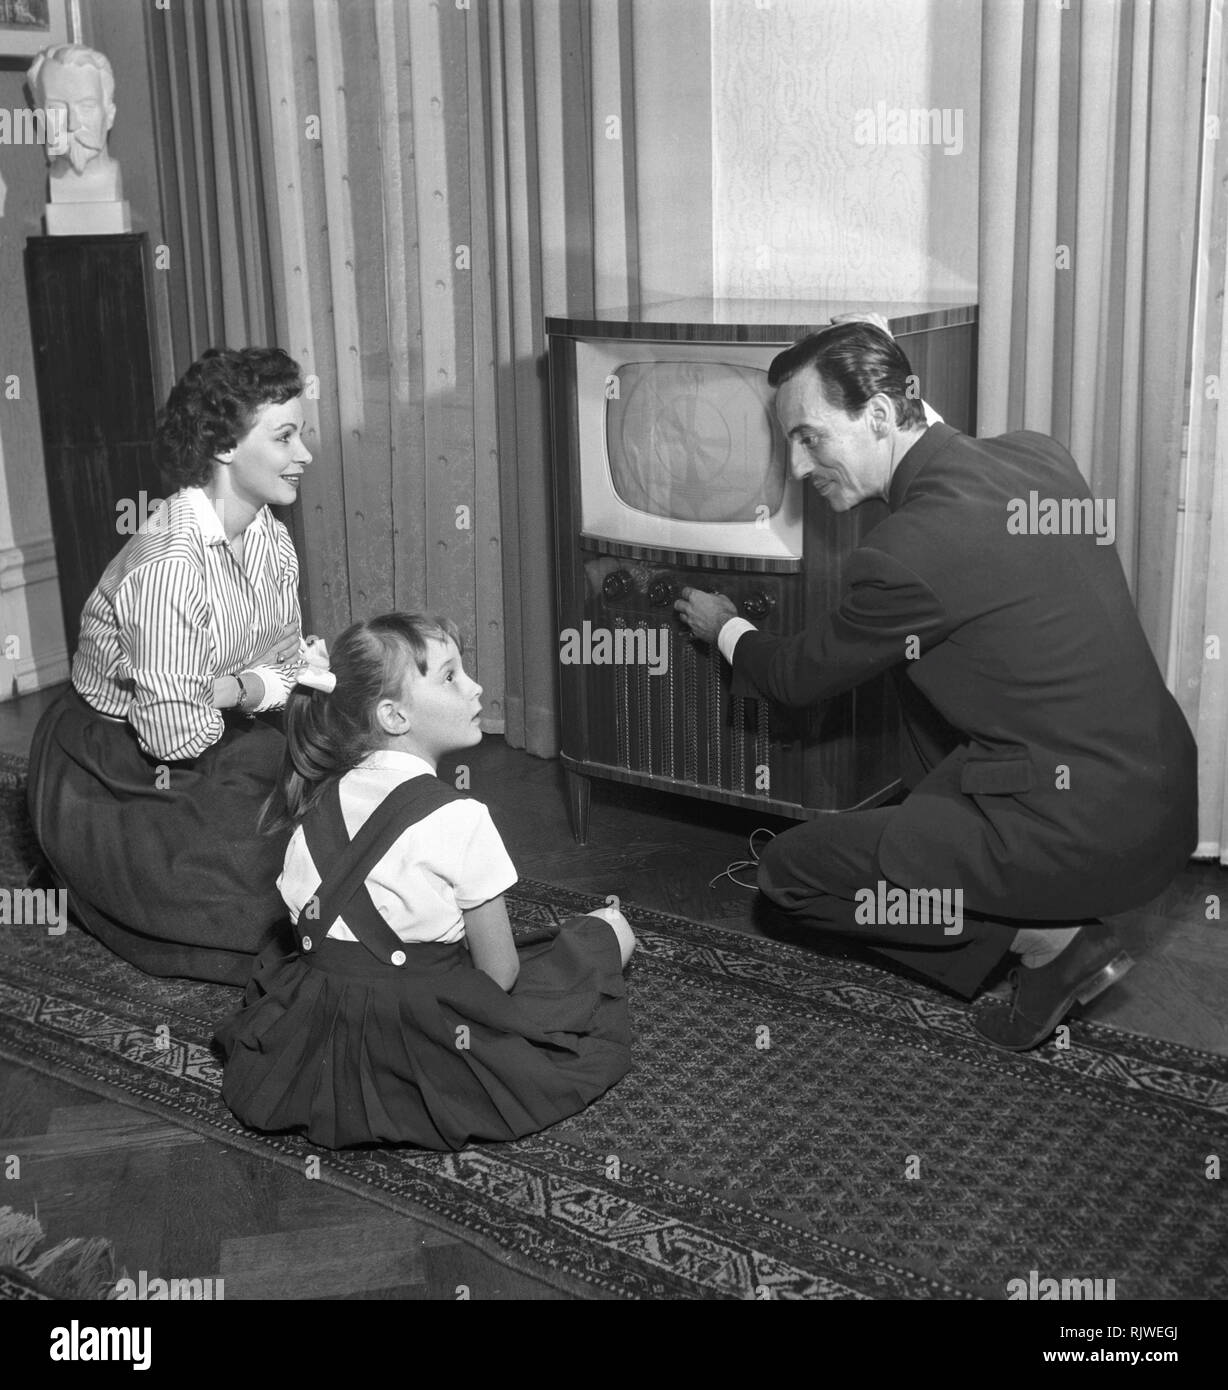 Television in the 1950s. A young couple is pictured with a typical 50s television set. The husband is adjusting the pictures and his wife and child is admiring the modern kind of home entertainment.  Photo Kristoffersson ref BU35-12. Sweden 1950s - Stock Image